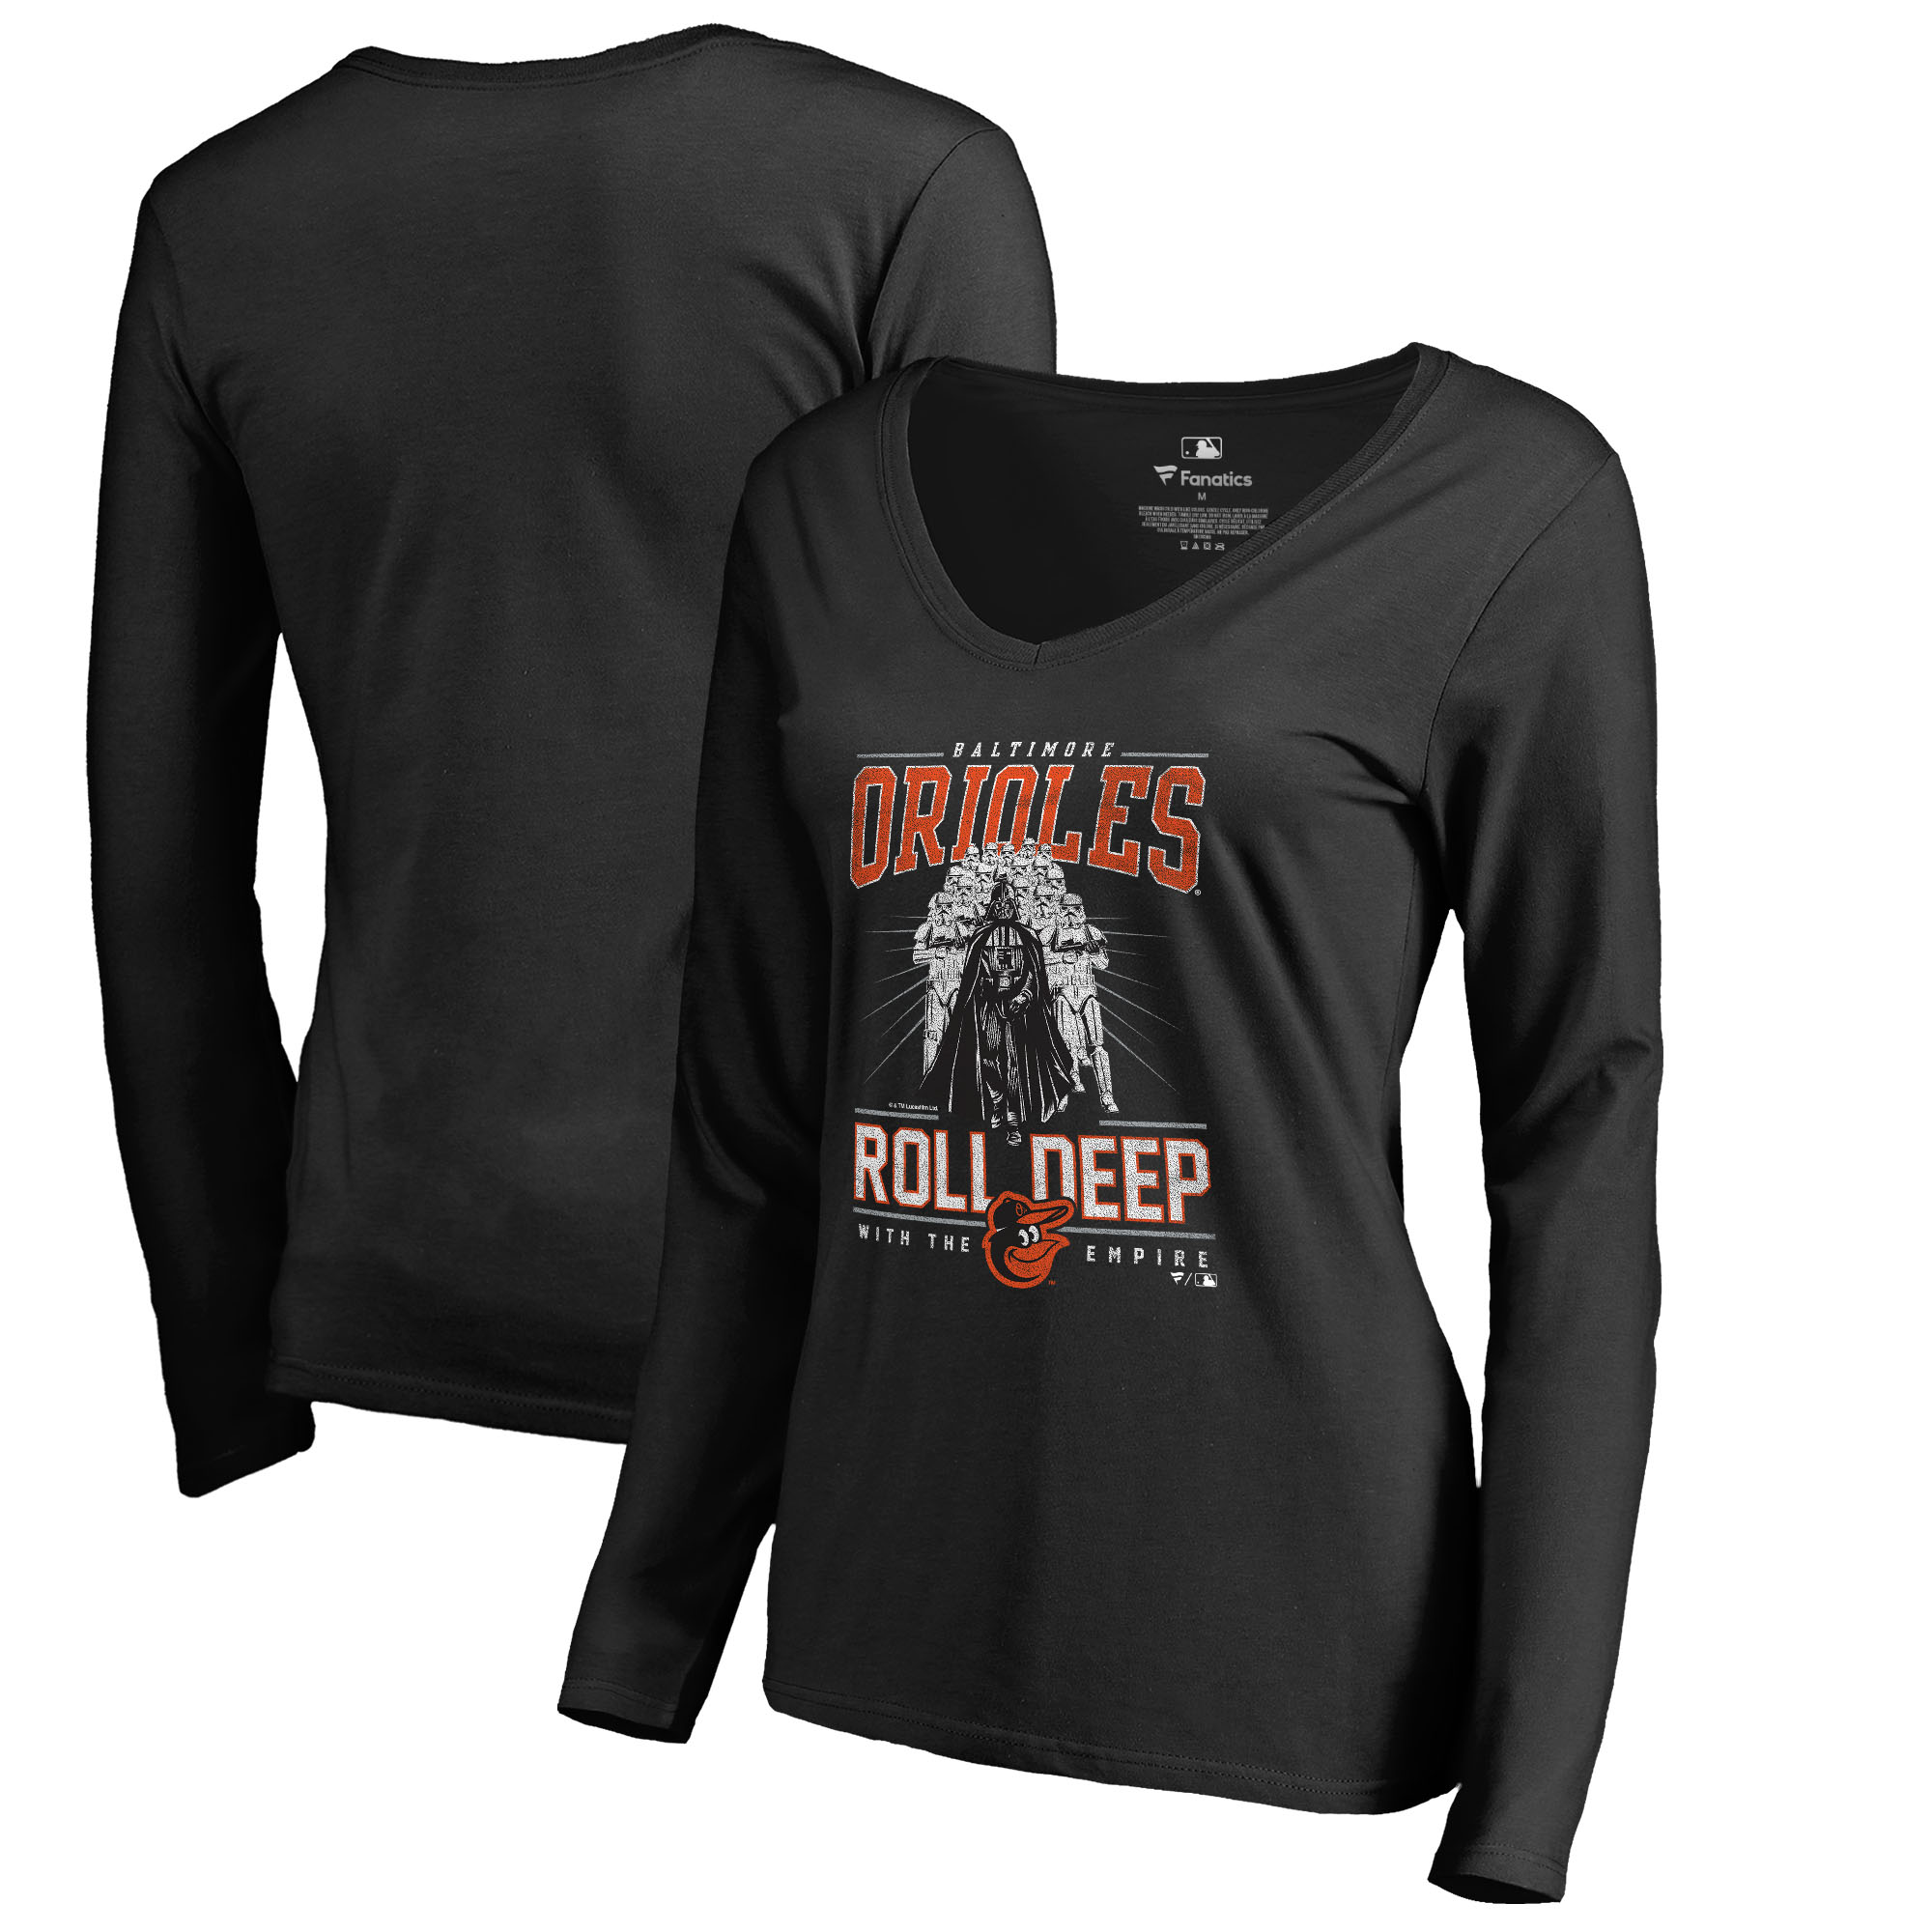 Baltimore Orioles Fanatics Branded Women's Roll Deep with the Empire Long Sleeve T-Shirt - Black